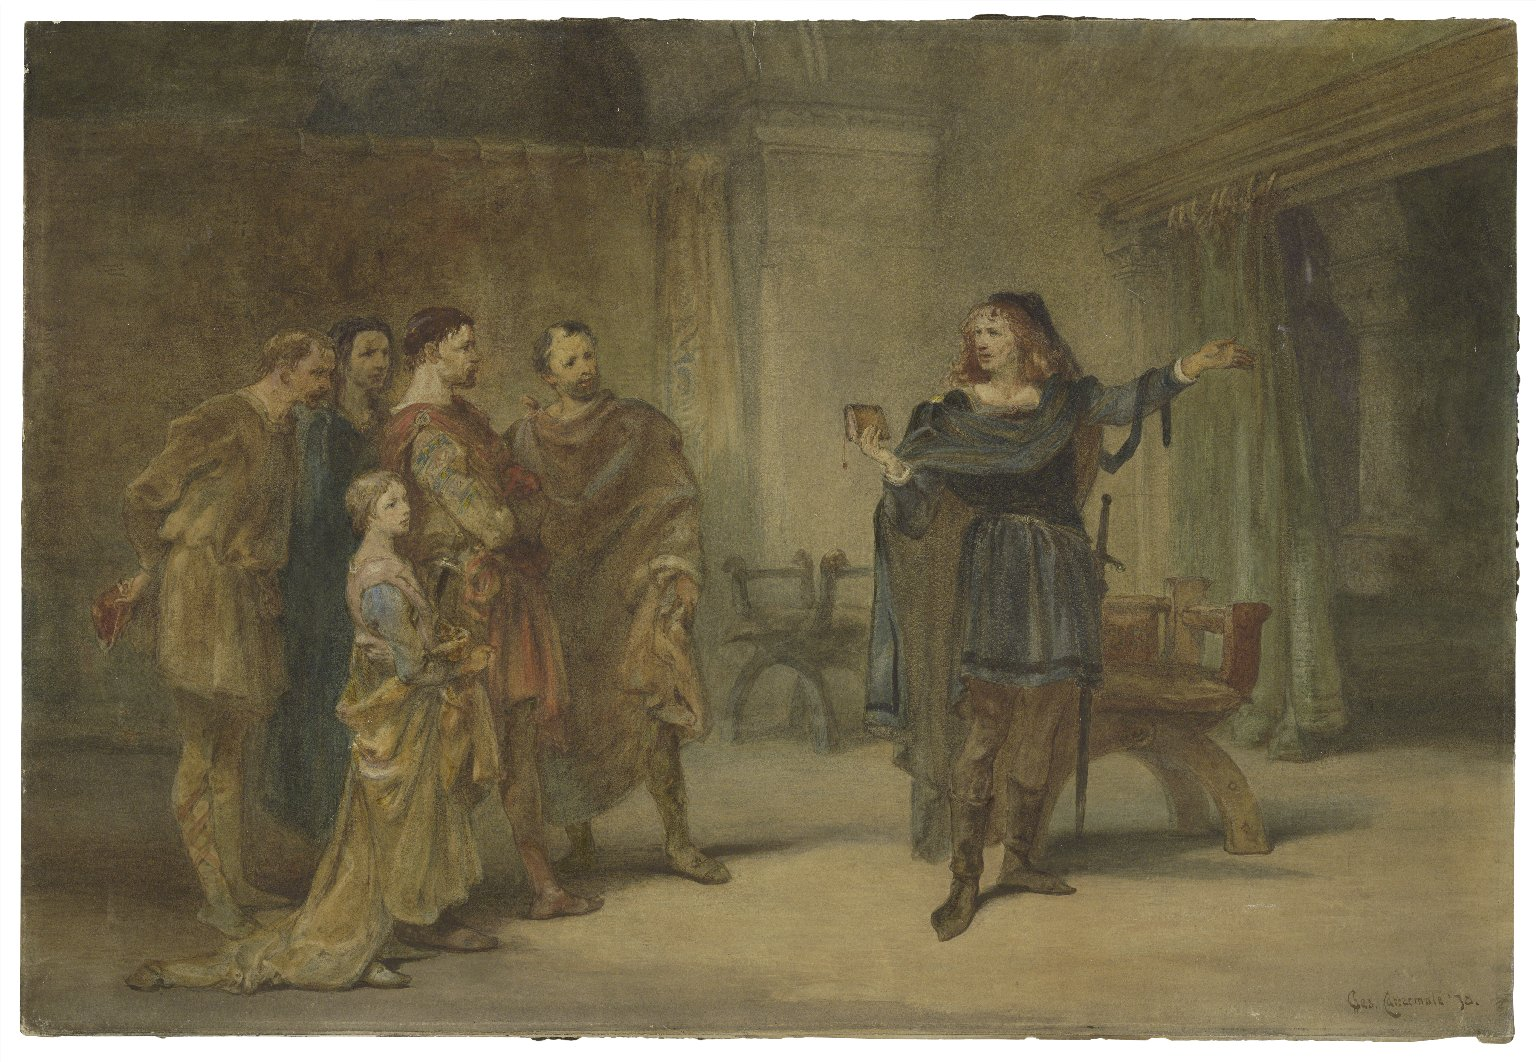 the antiheroism in shakespeares play hamlet Marcus antonius was a hero, of sorts, in his defense of caesar's reputation, although he failed in his bid for personal power and was ultmately a loser in shakespeare, there are many leading roles, and villains aplenty.